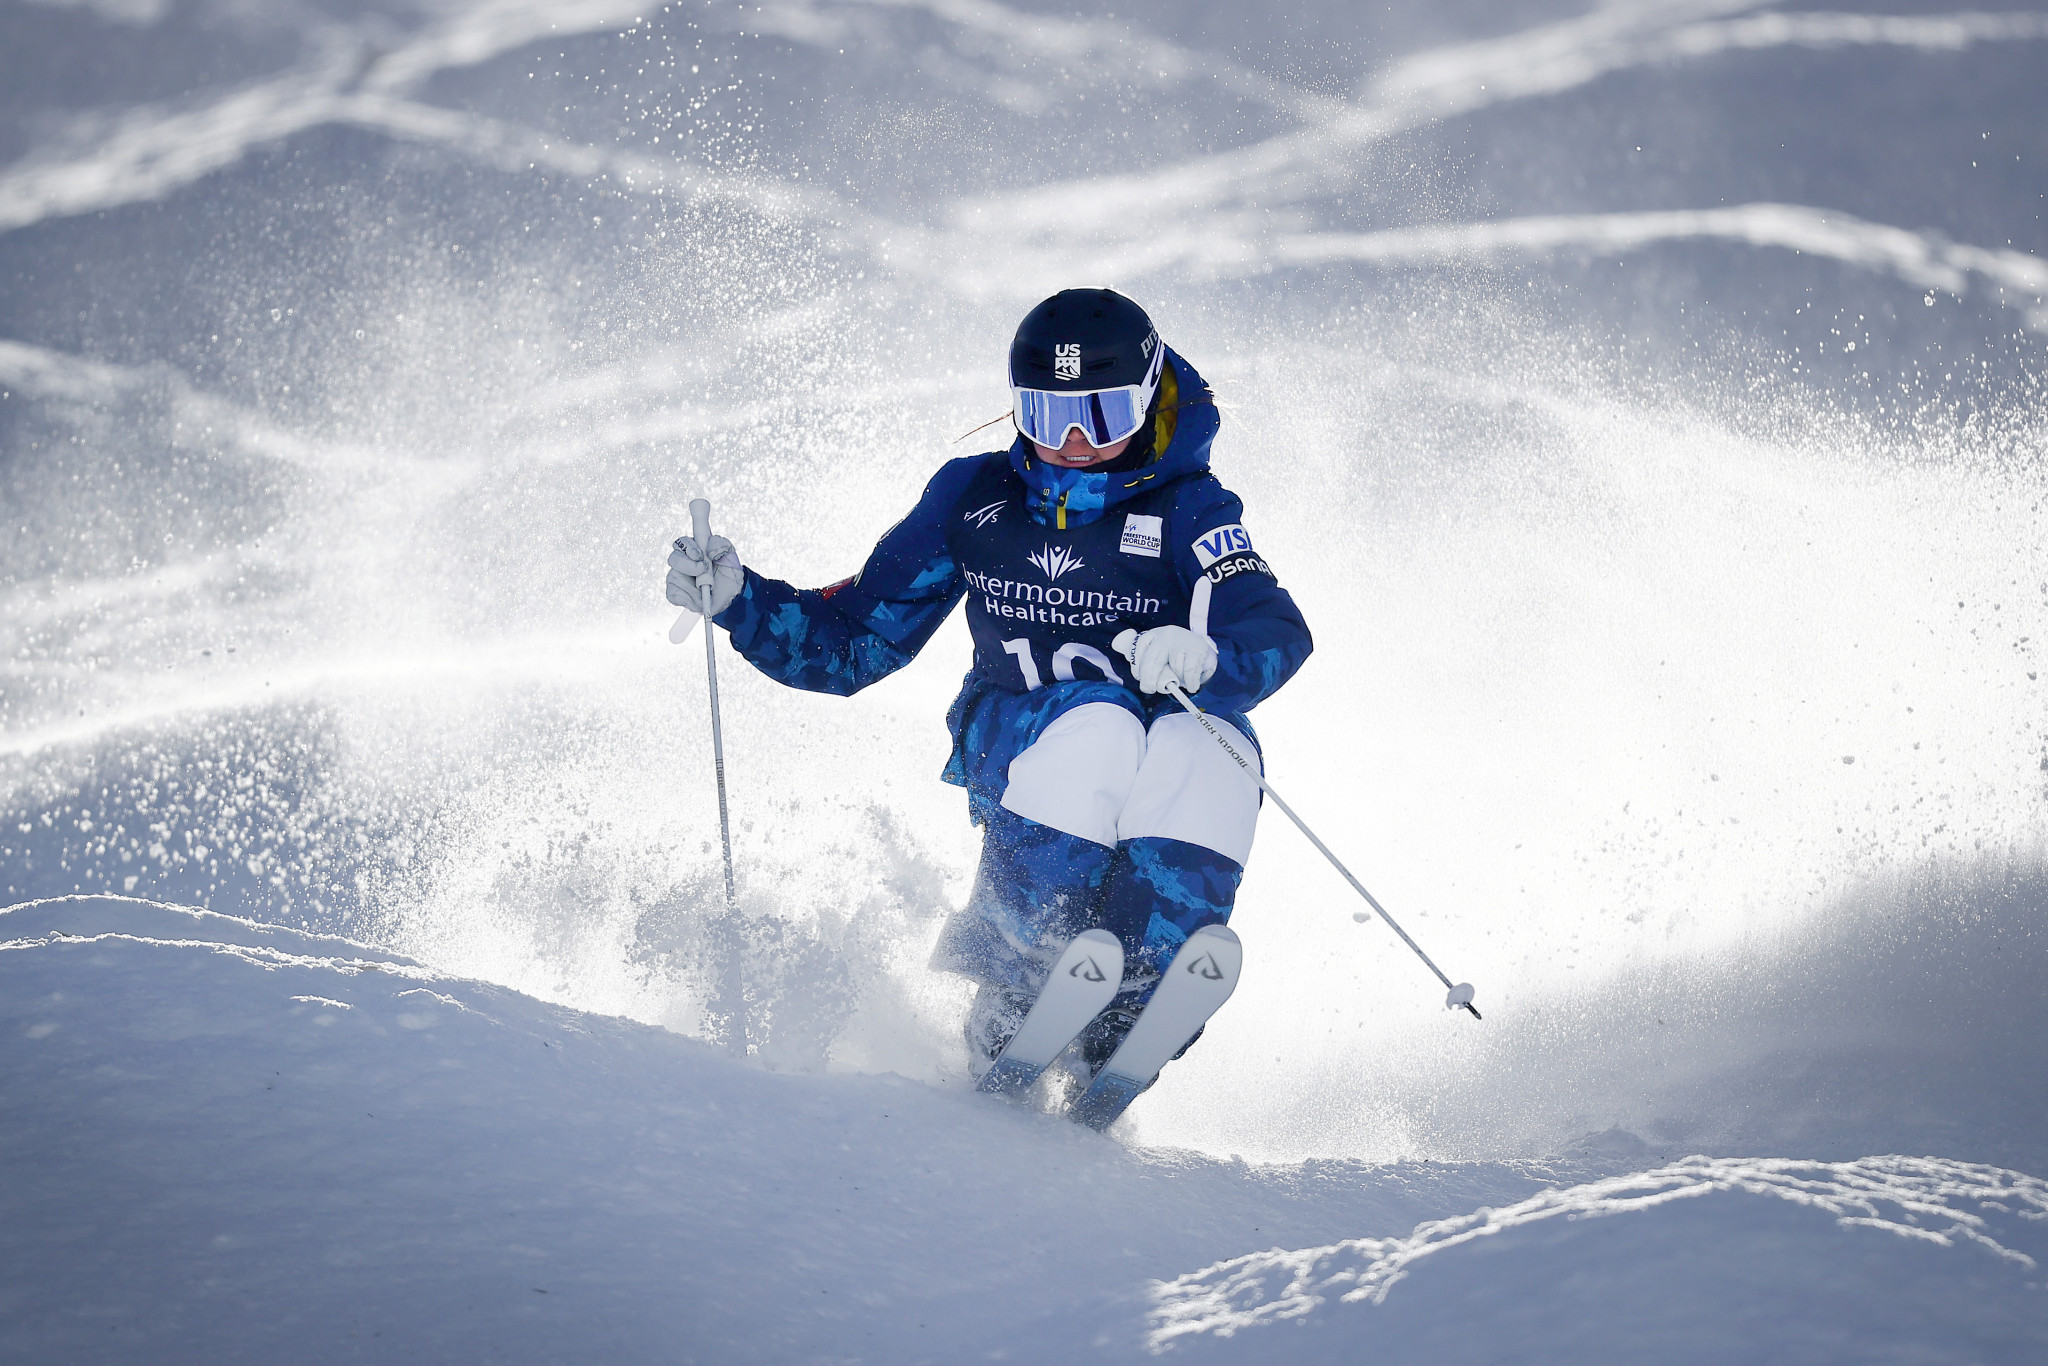 Kingsbury and 16-year-old Owens win dual moguls at Deer Valley World Cup